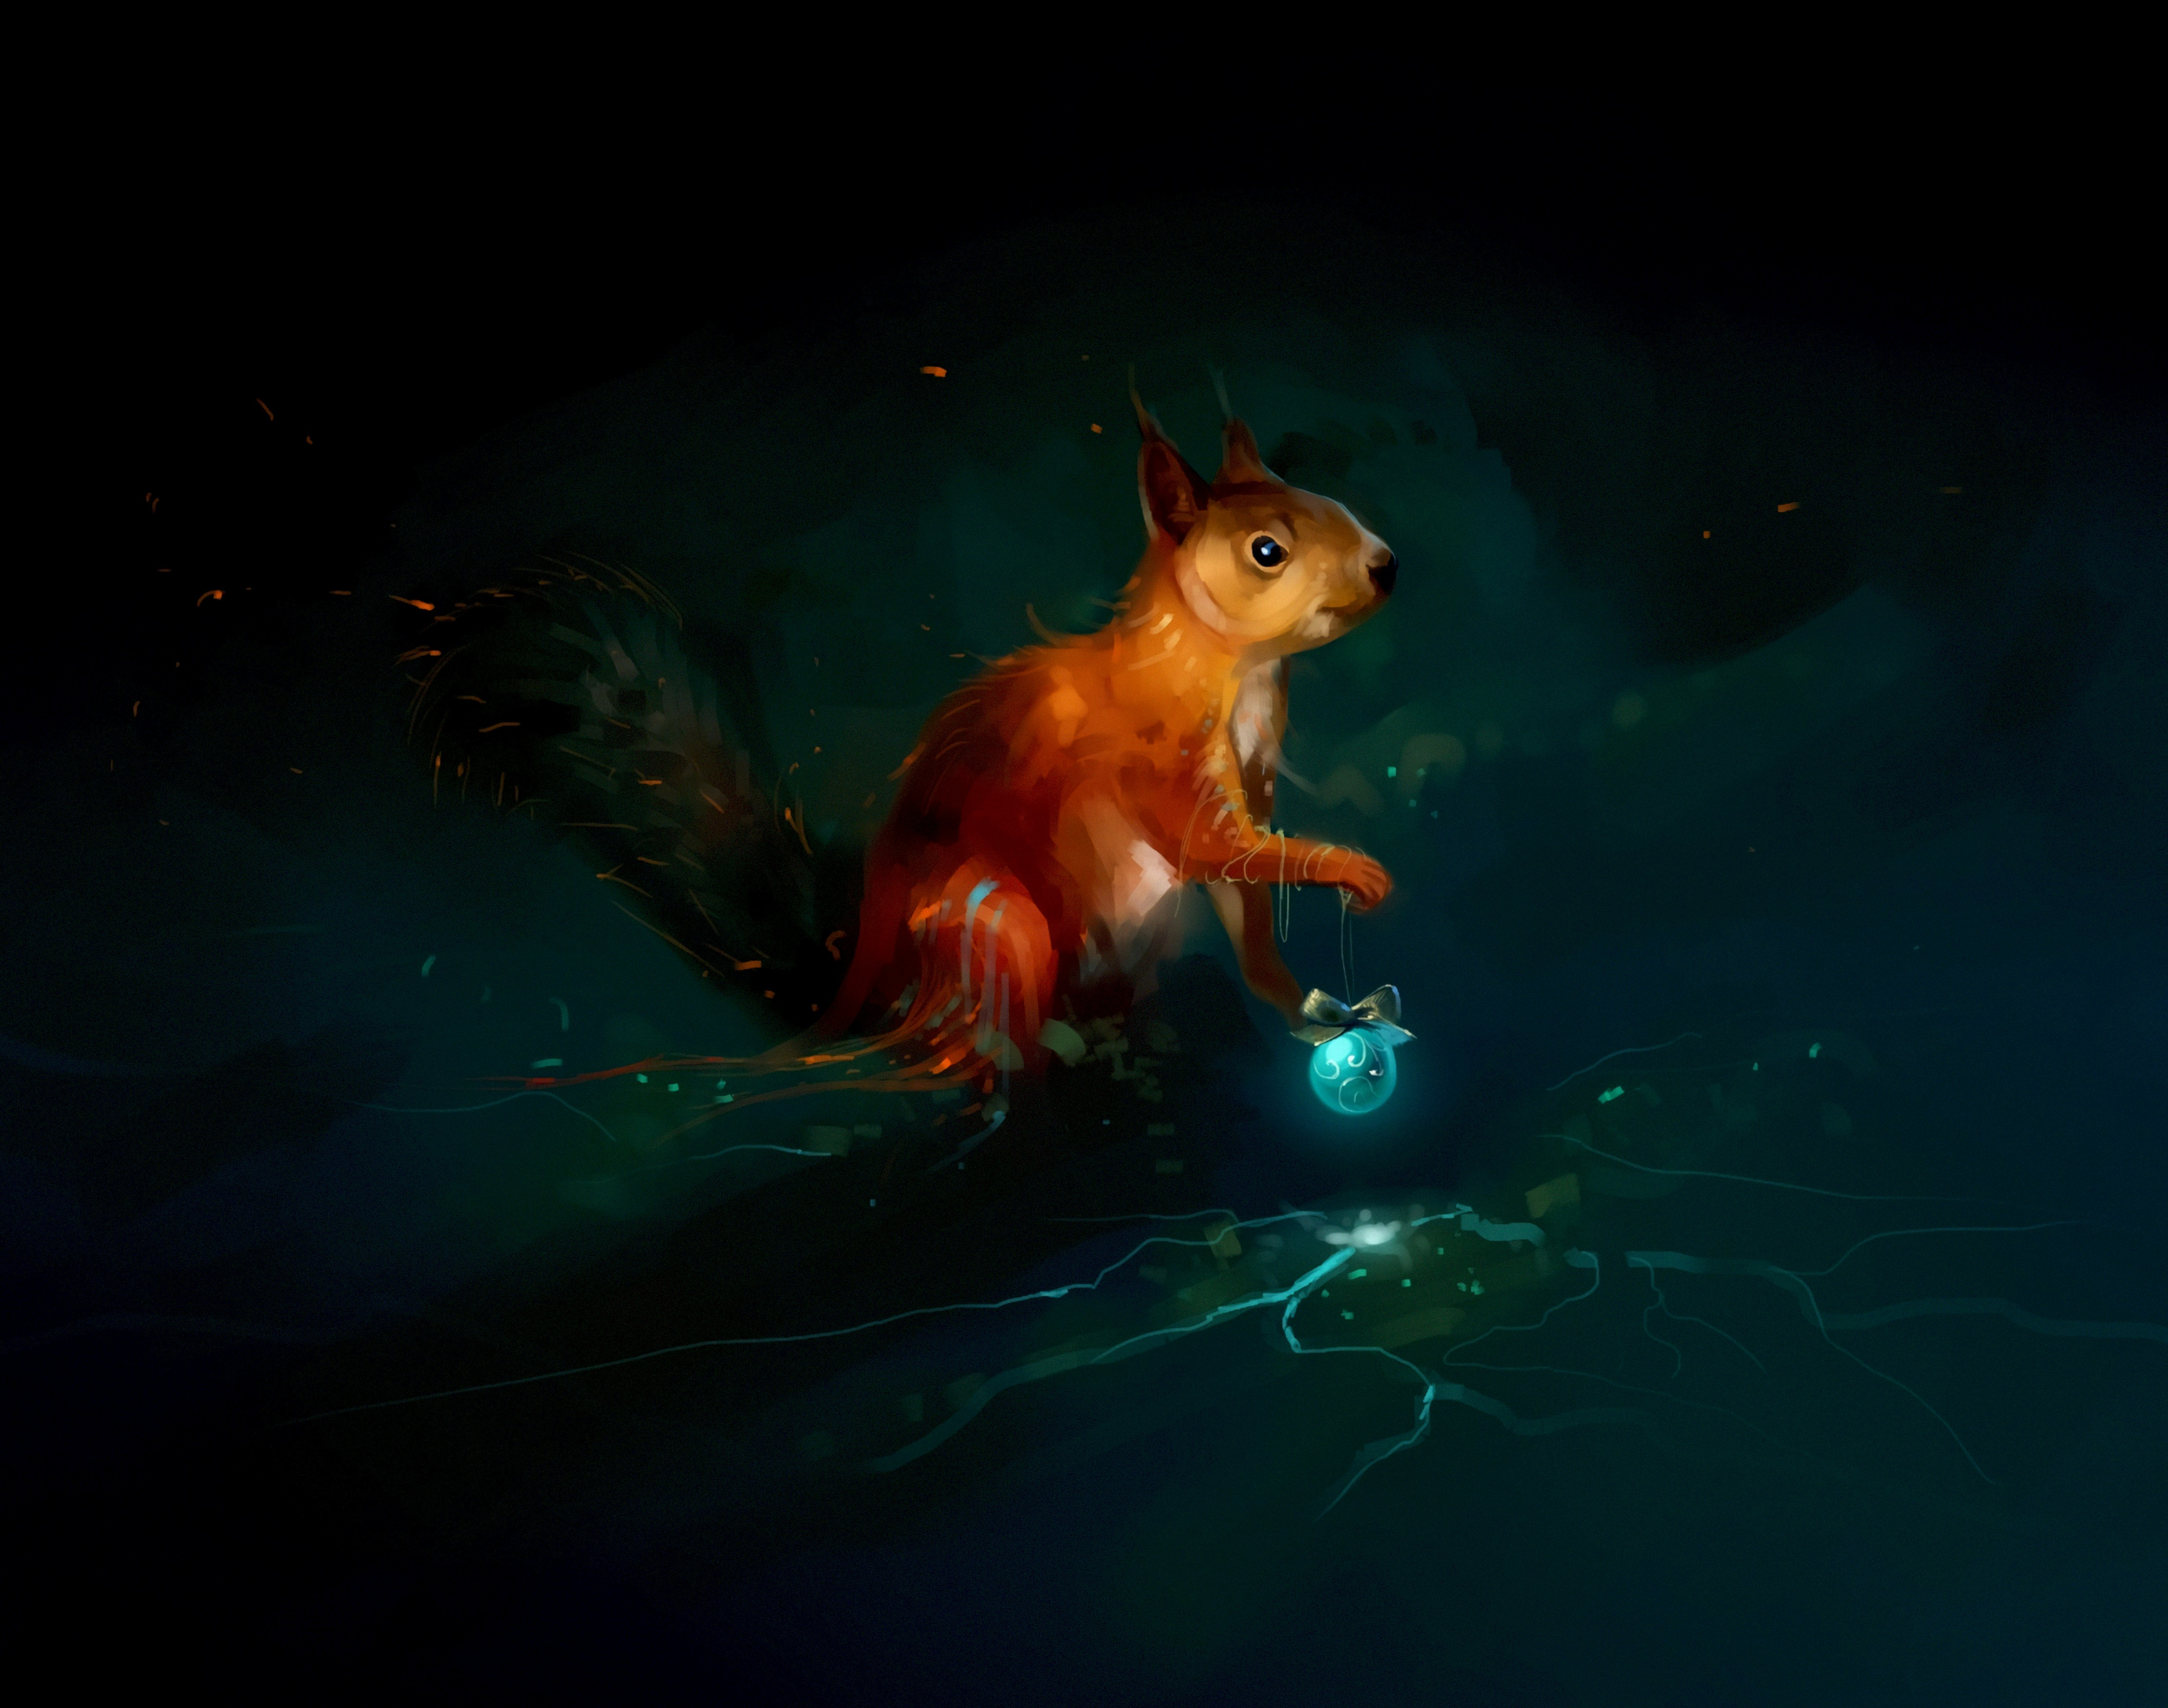 141919 Screensavers and Wallpapers Squirrel for phone. Download Squirrel, Art, Dark, Christmas Tree Toy pictures for free